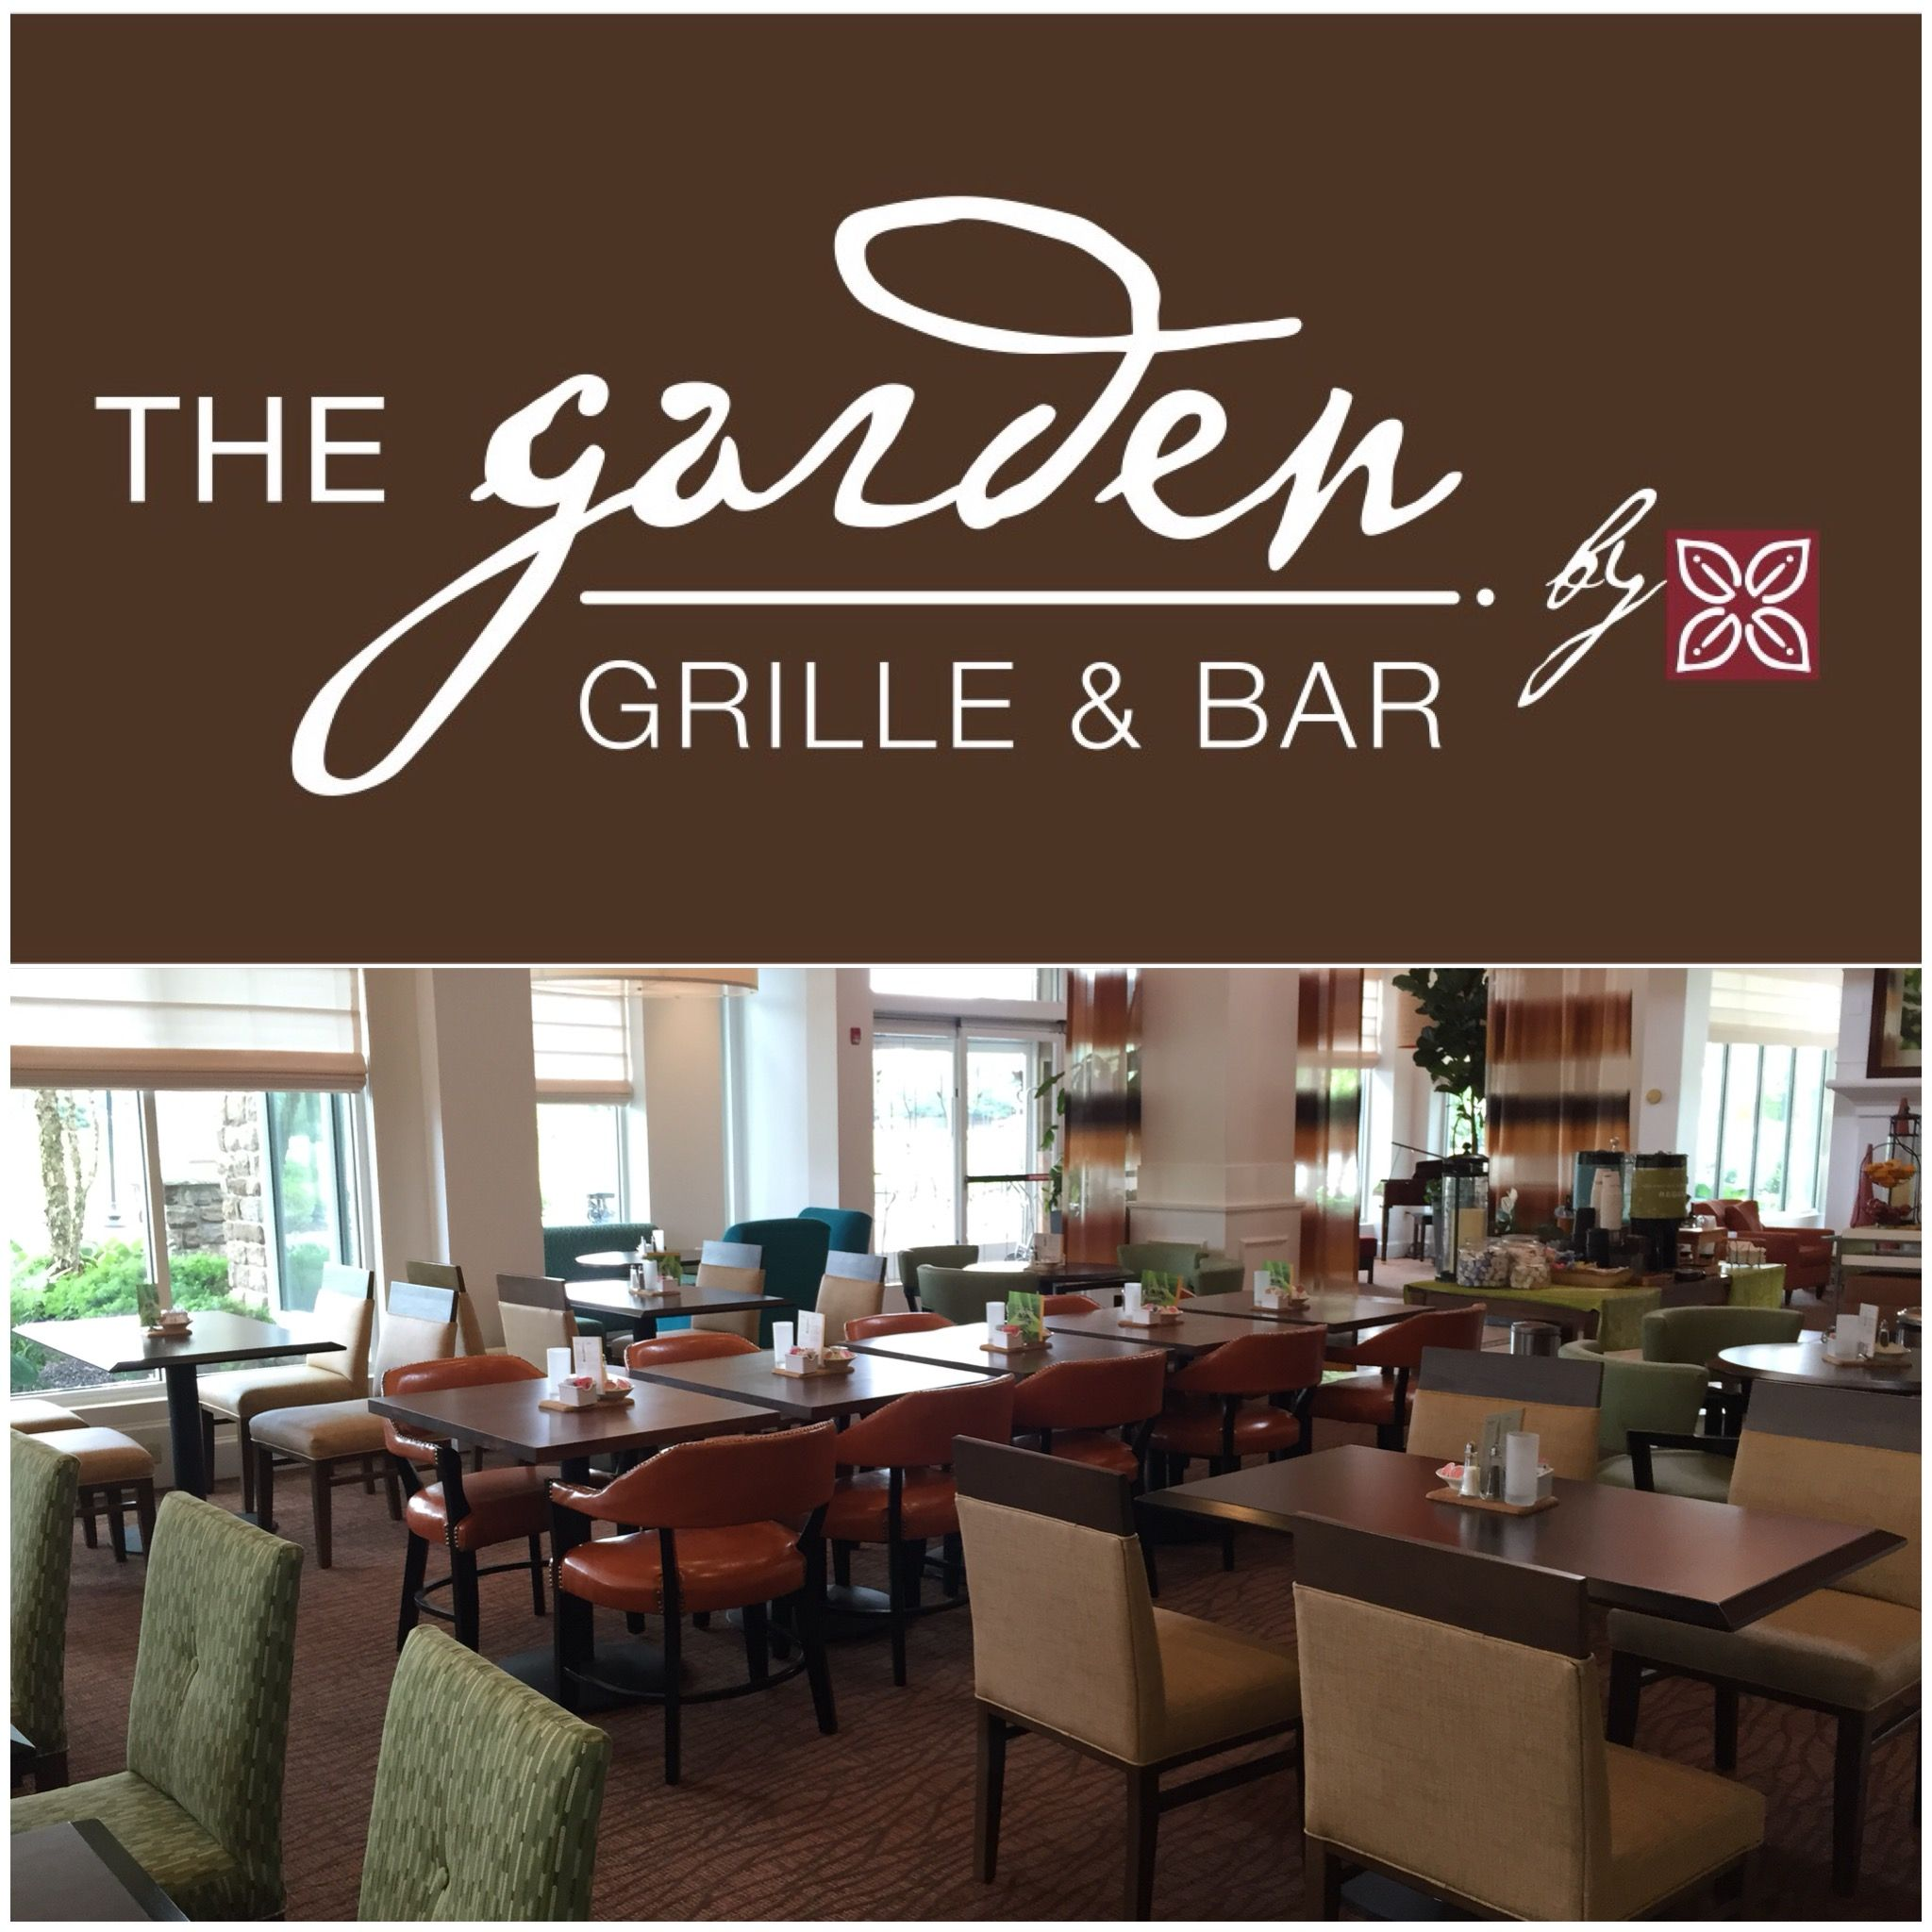 Our Garden Grille at The Hilton Garden Inn, Hamilton NJ is open to ...